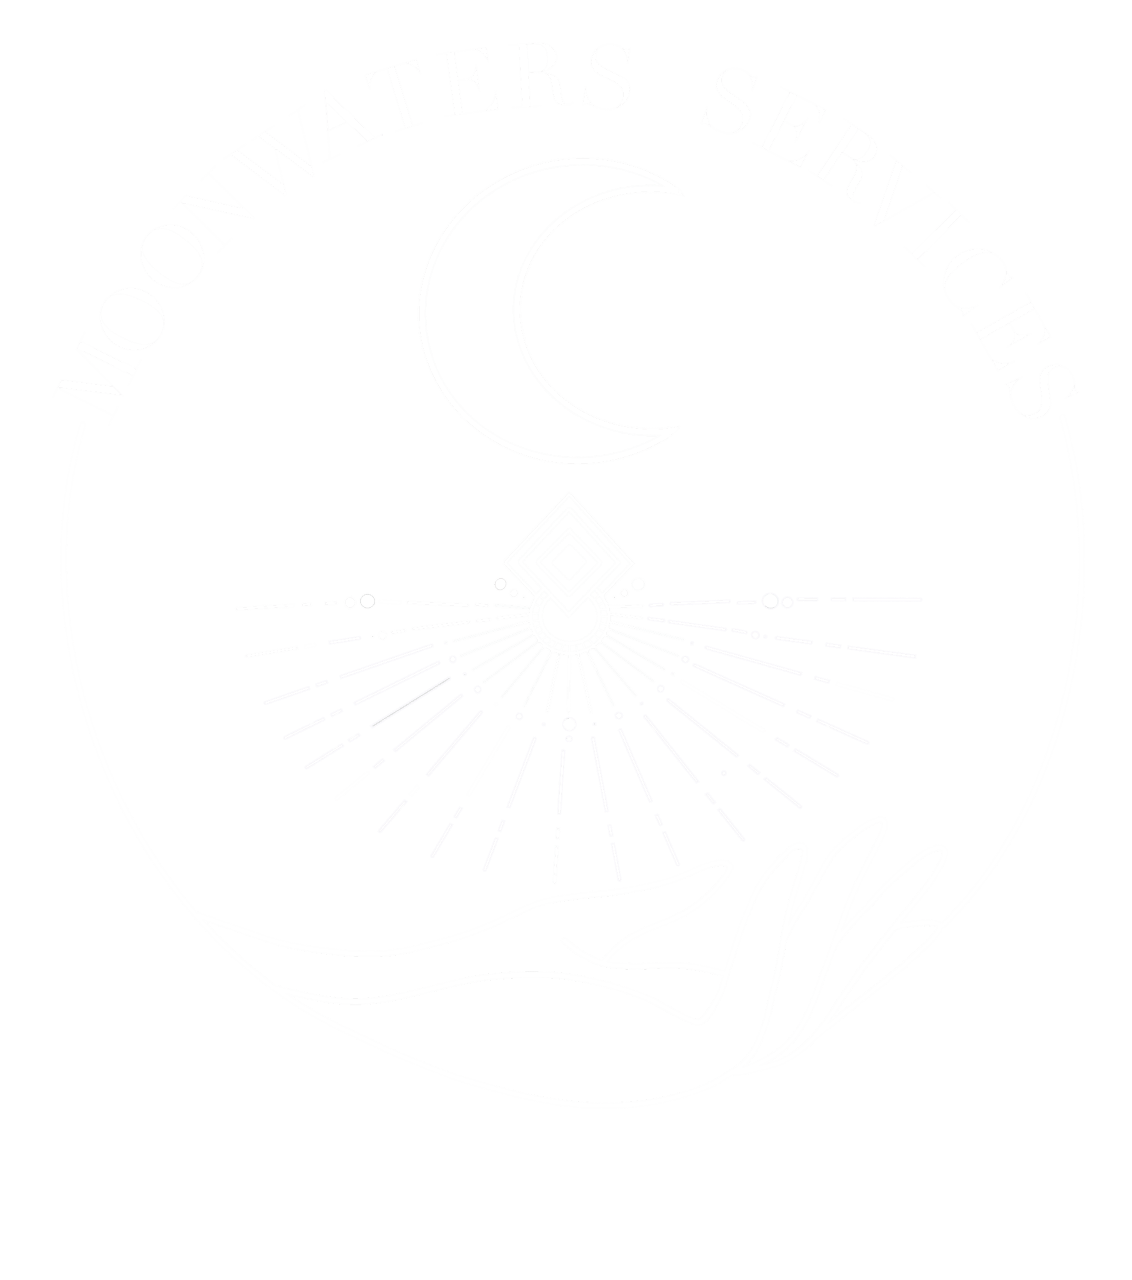 MoonWaters Services